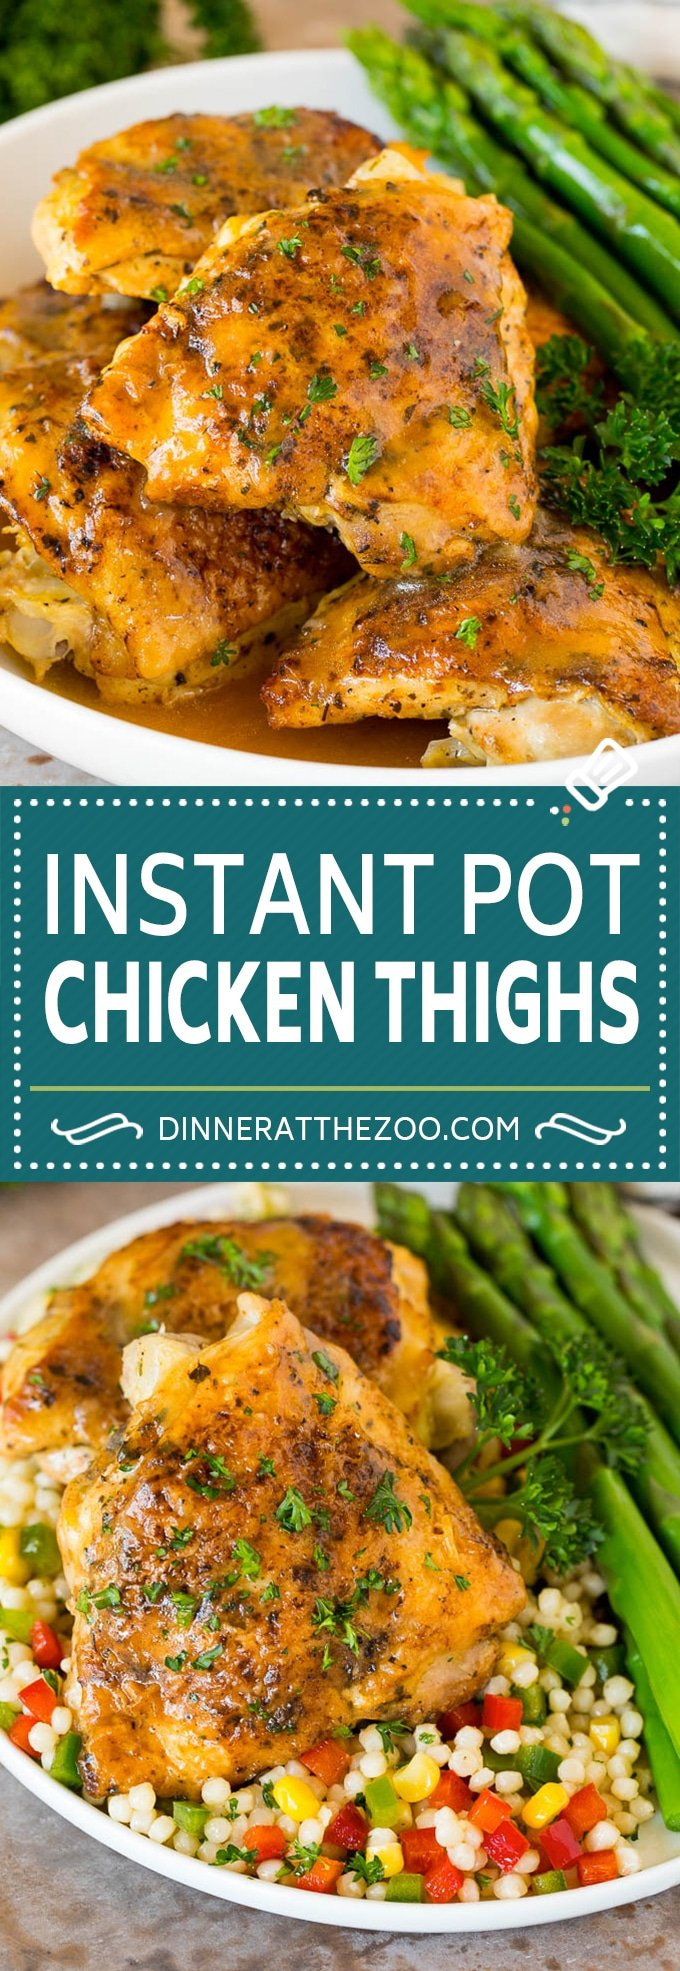 These Instant Pot chicken thighs are coated with herbs and spices, then seared and pressure cooked to tender perfection.